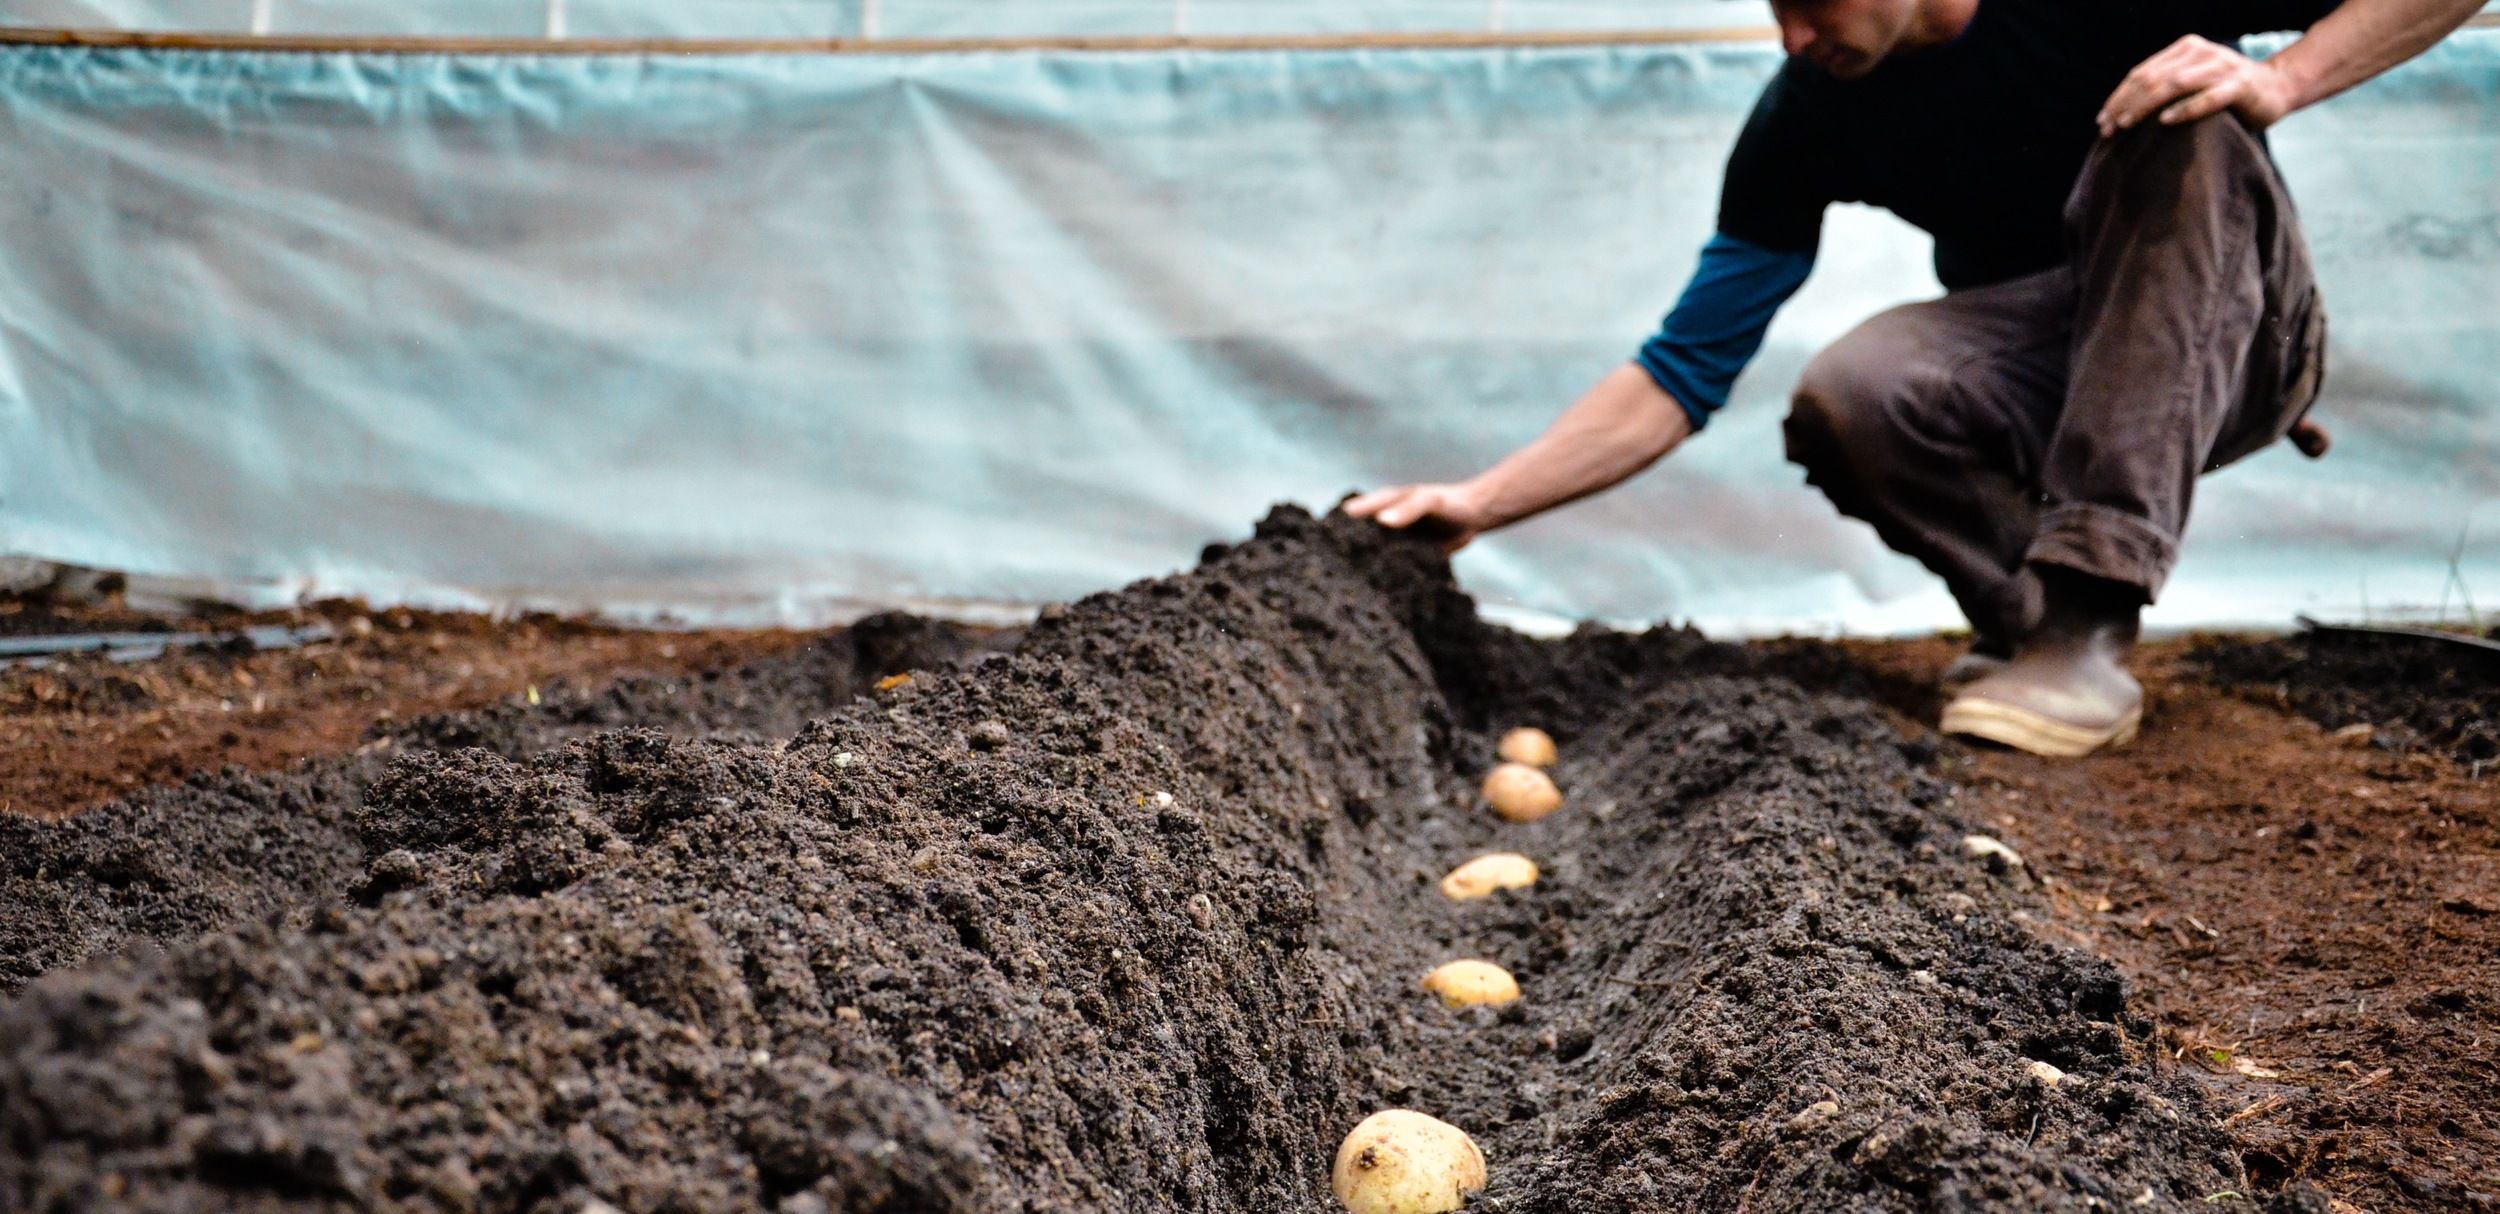 Seattle Urban Farm Company_Colin McCrate_Planting Potatoes